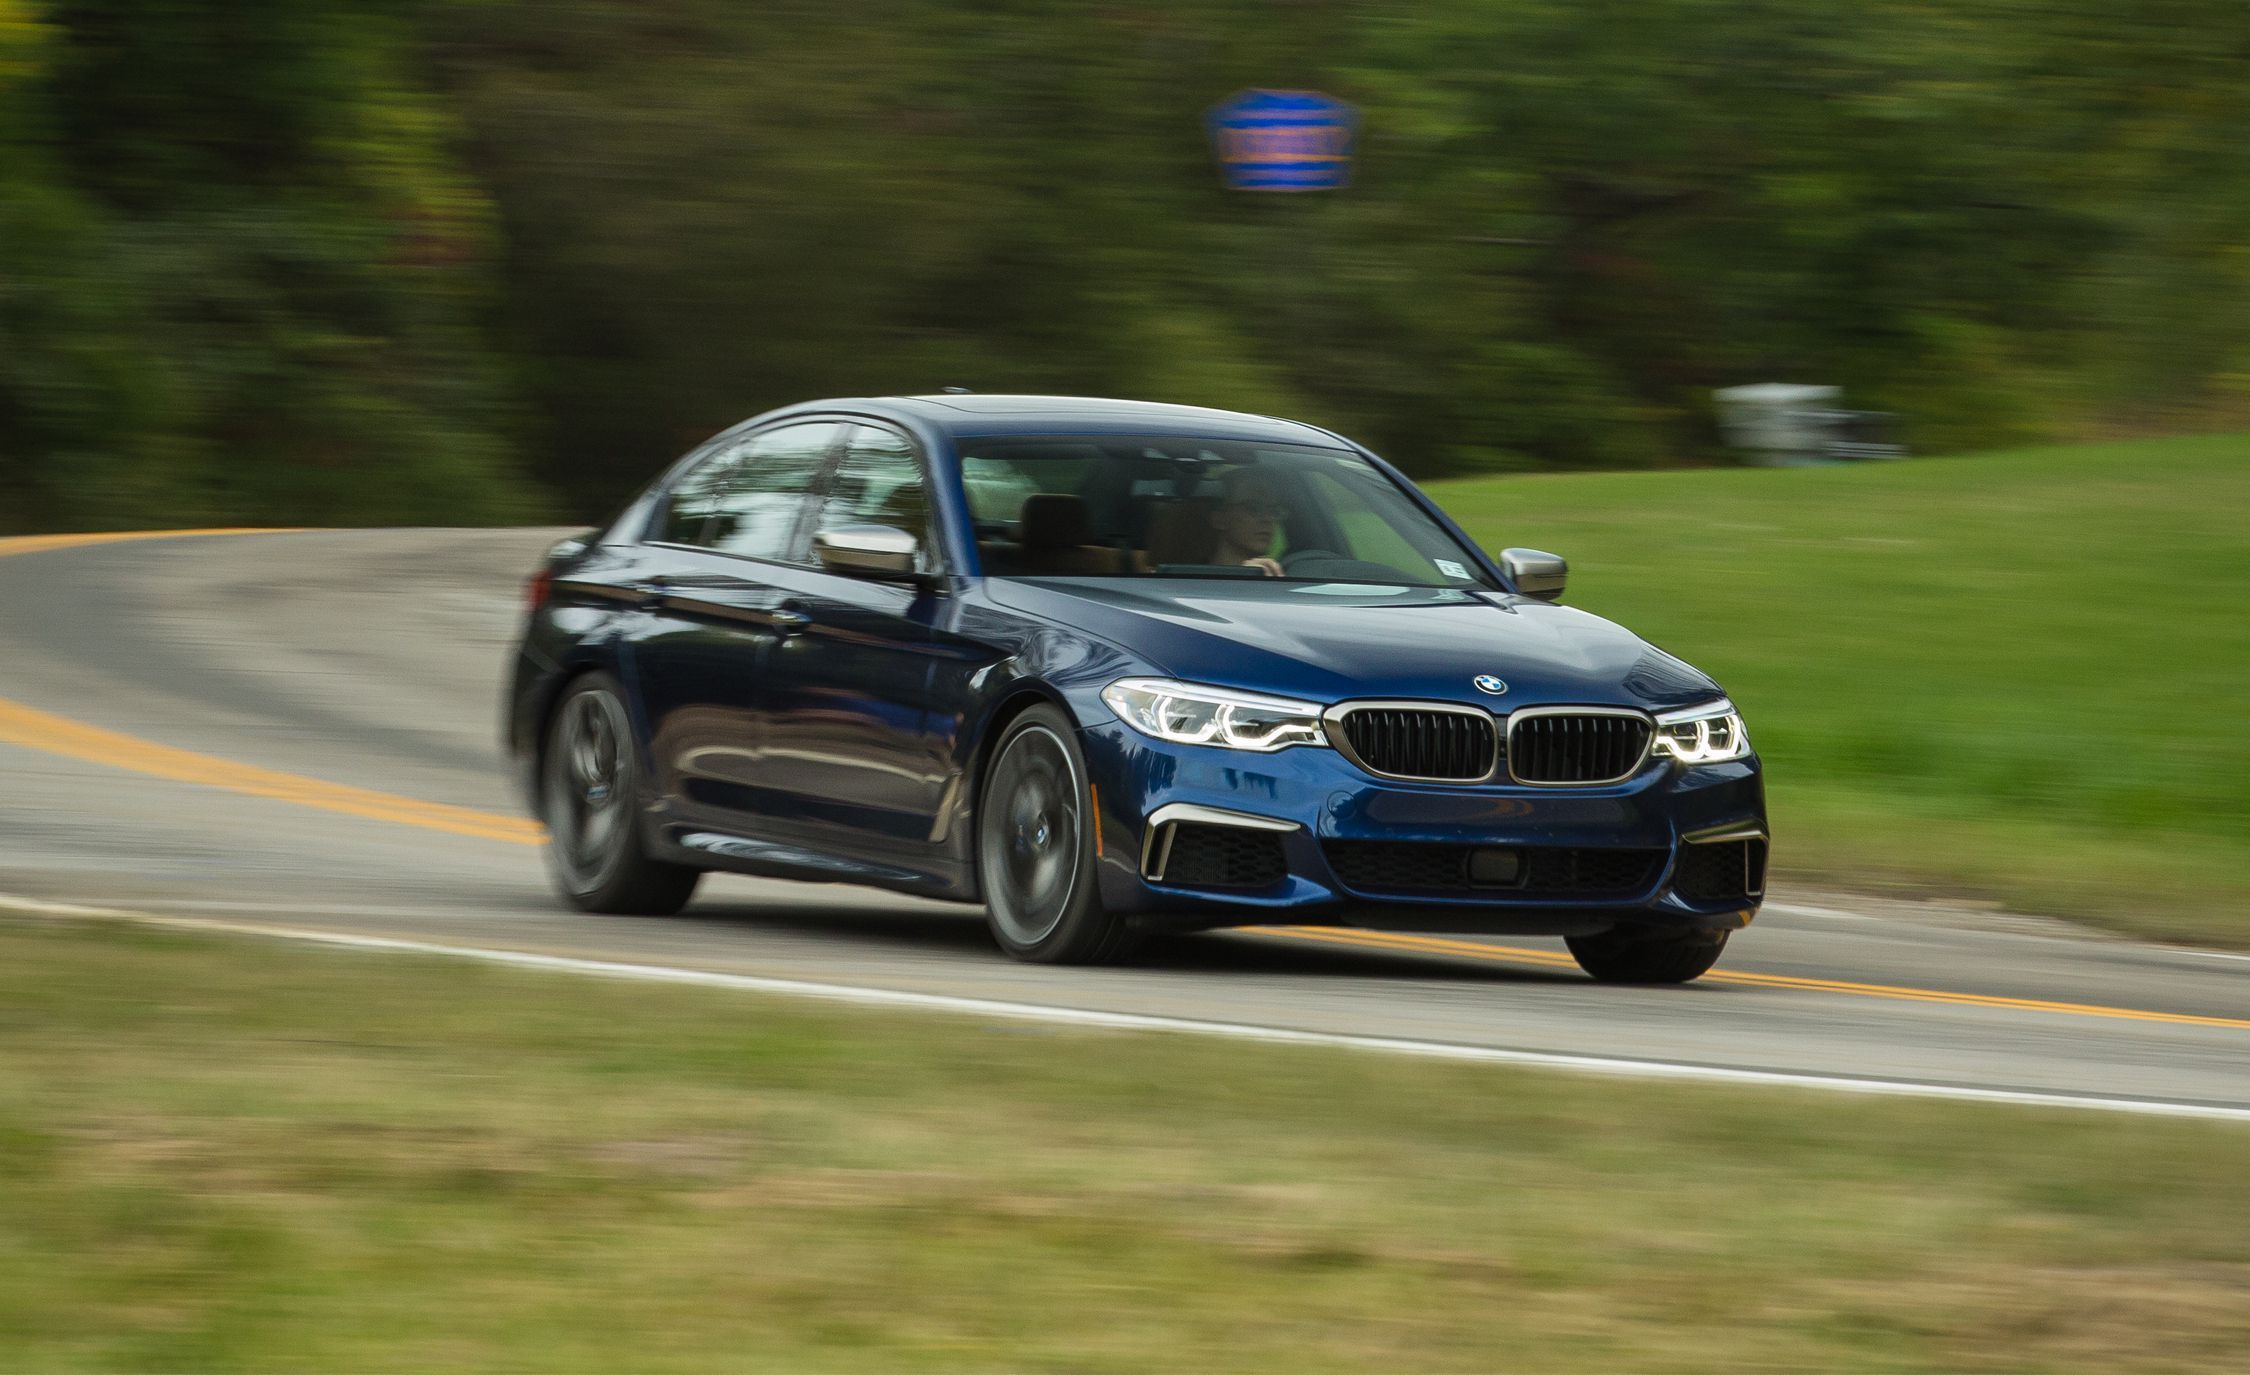 2019 bmw 5 series reviews bmw 5 series price, photos, and specs2018 bmw m550i xdrive